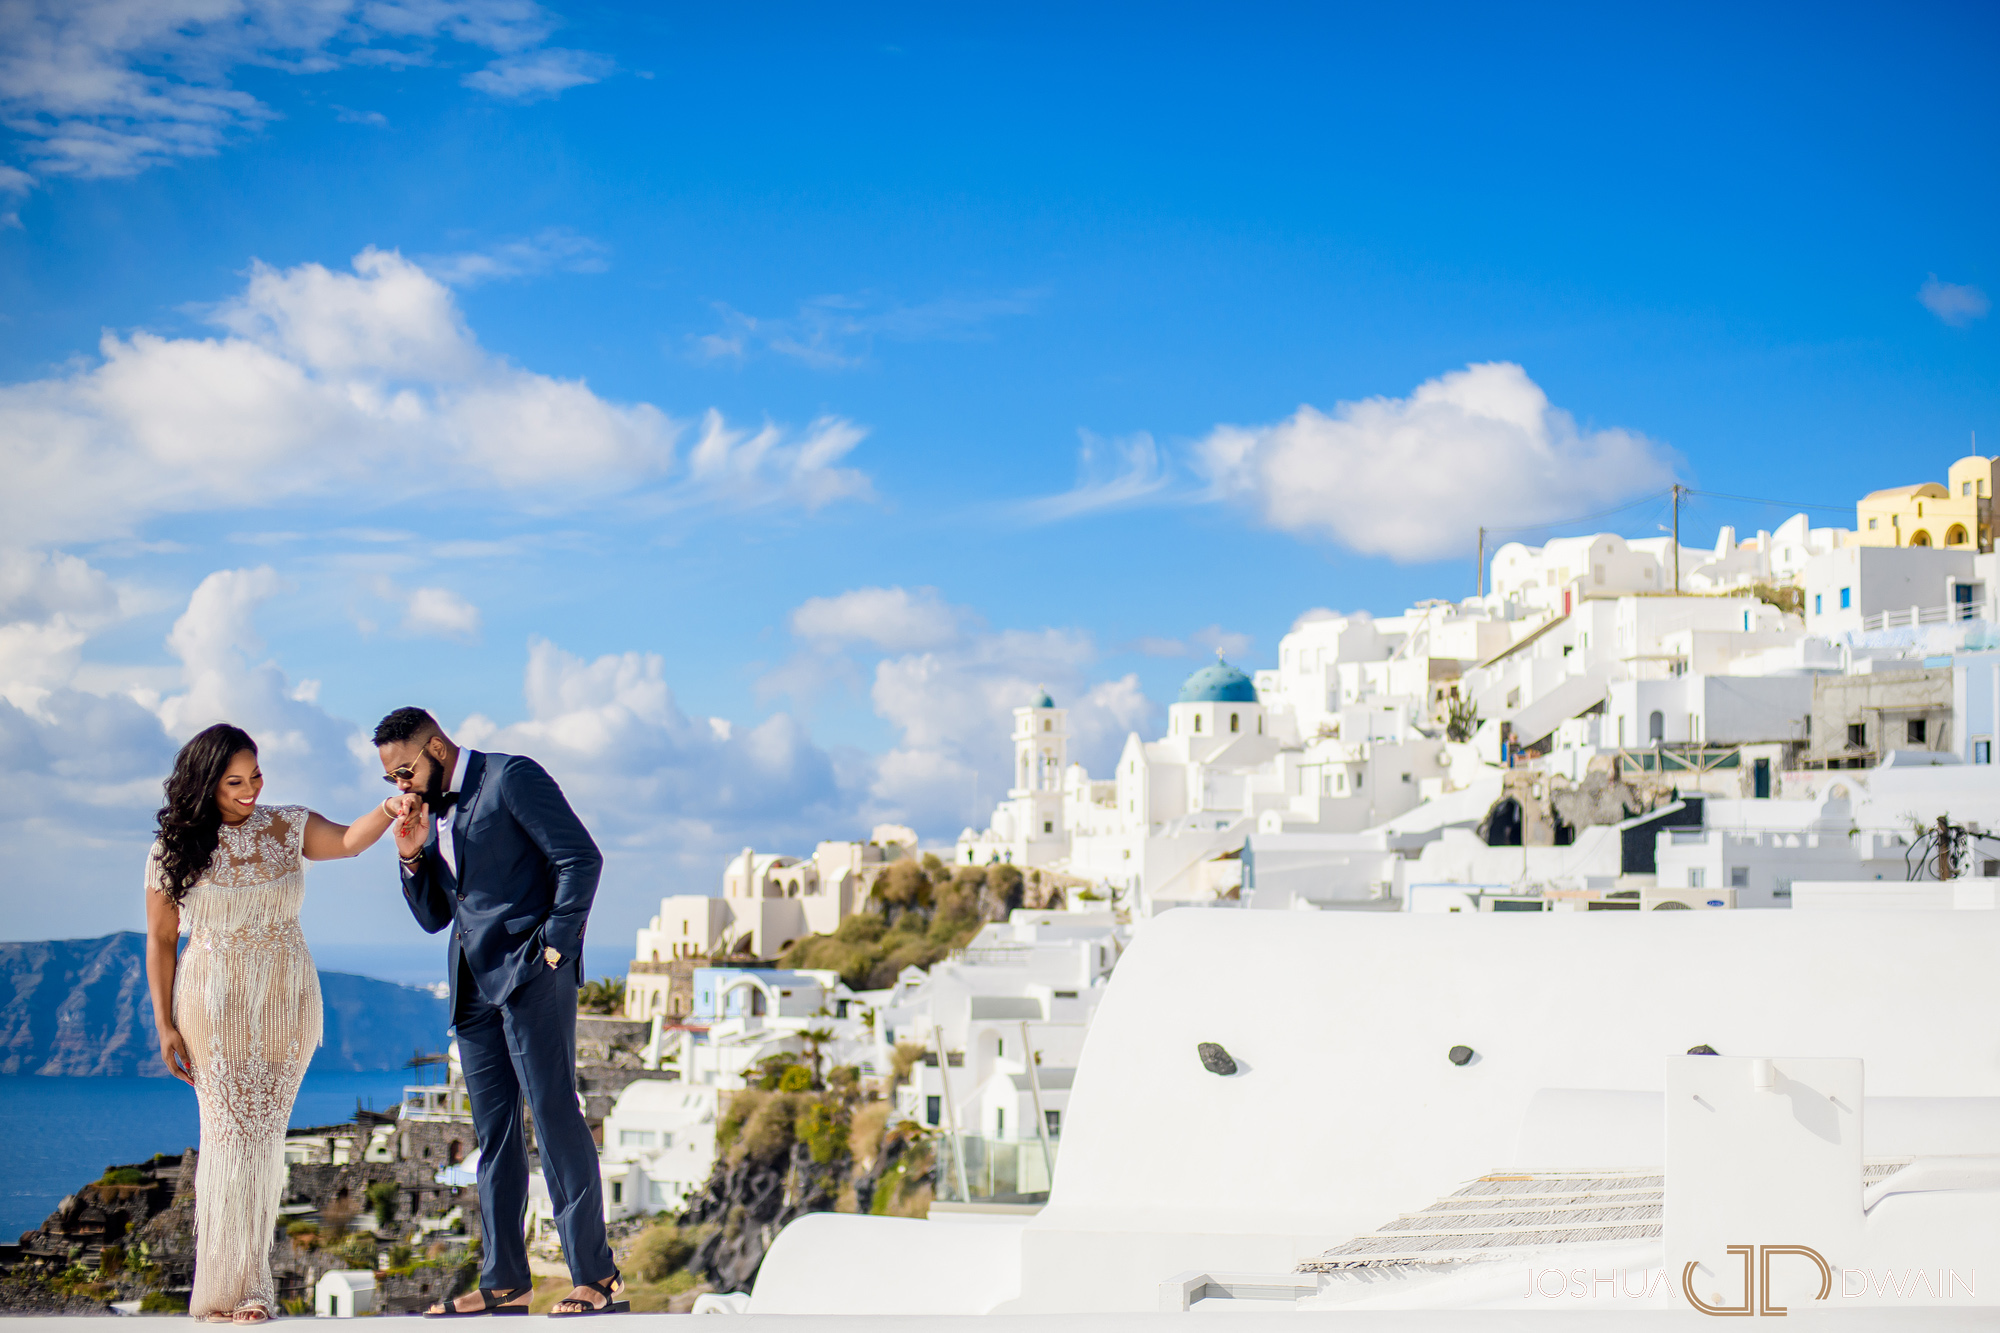 ekene-issac-04-santorini-oia-thira-greece-wedding-engagement-photos-african-american-destination-photographer-joshua-dwain